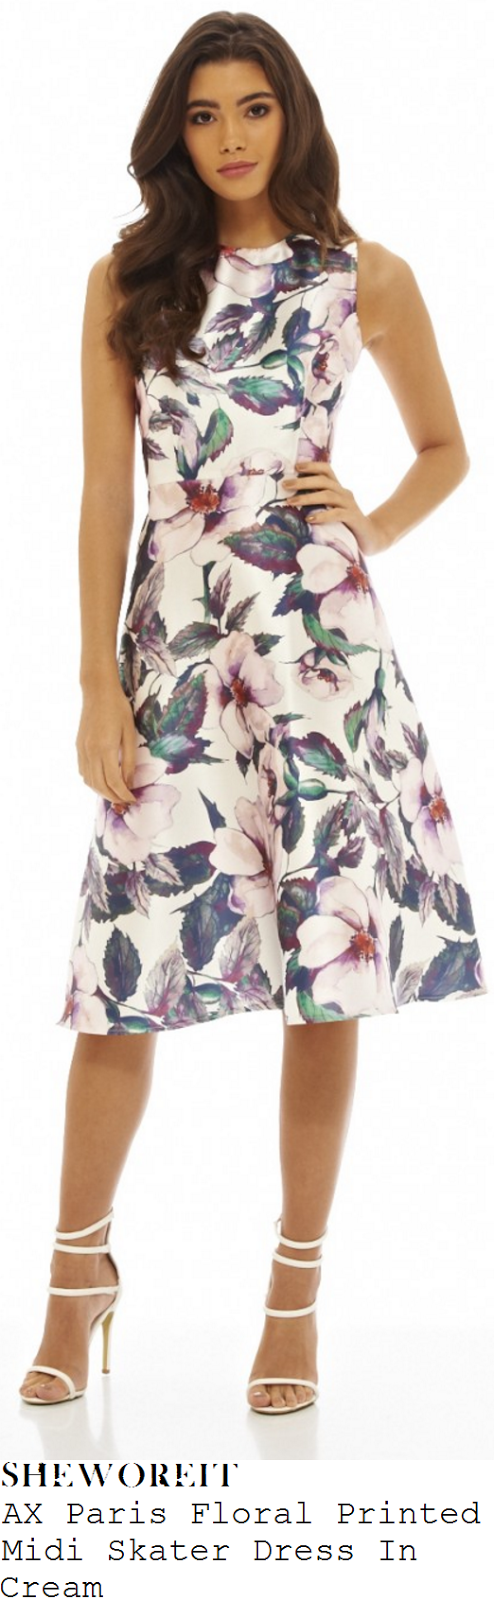 vicky-pattison-ax-paris-cream-and-purple-oversized-floral-print-sleeveless-skater-midi-dress